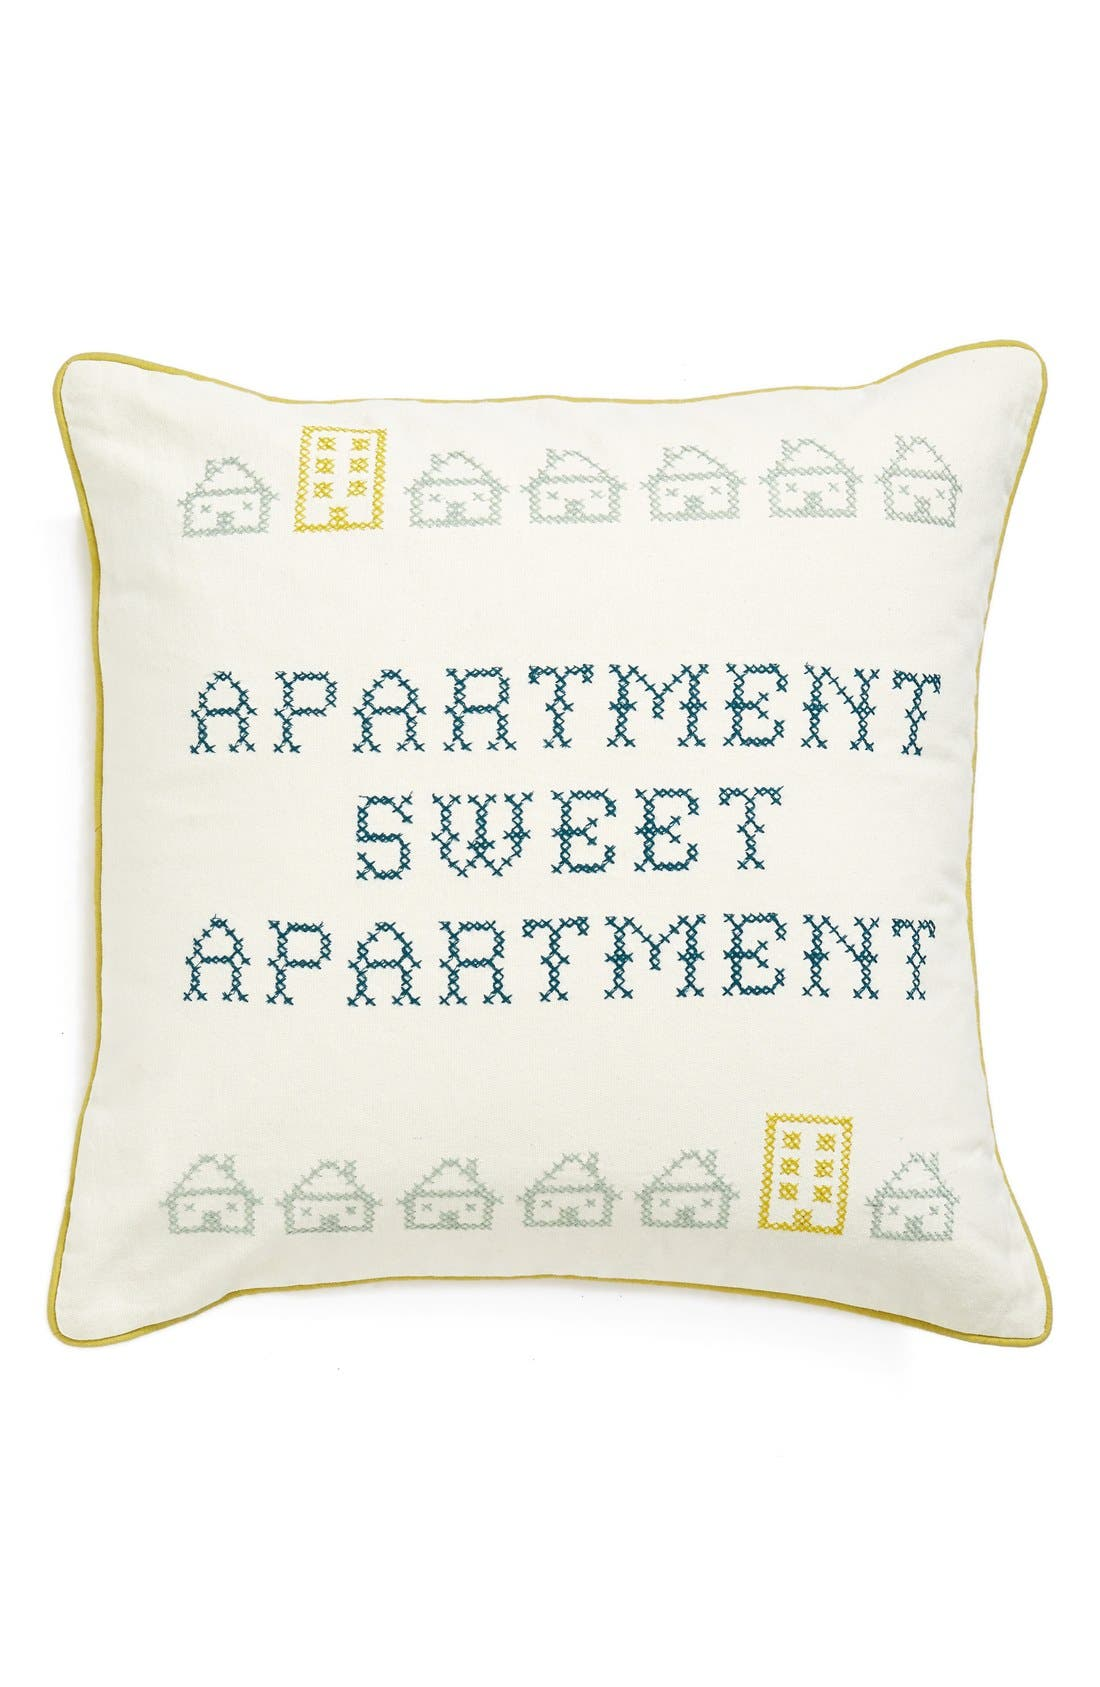 Alternate Image 1 Selected - Nordstrom at Home 'Sweet Apartment' Embroidered Accent Pillow